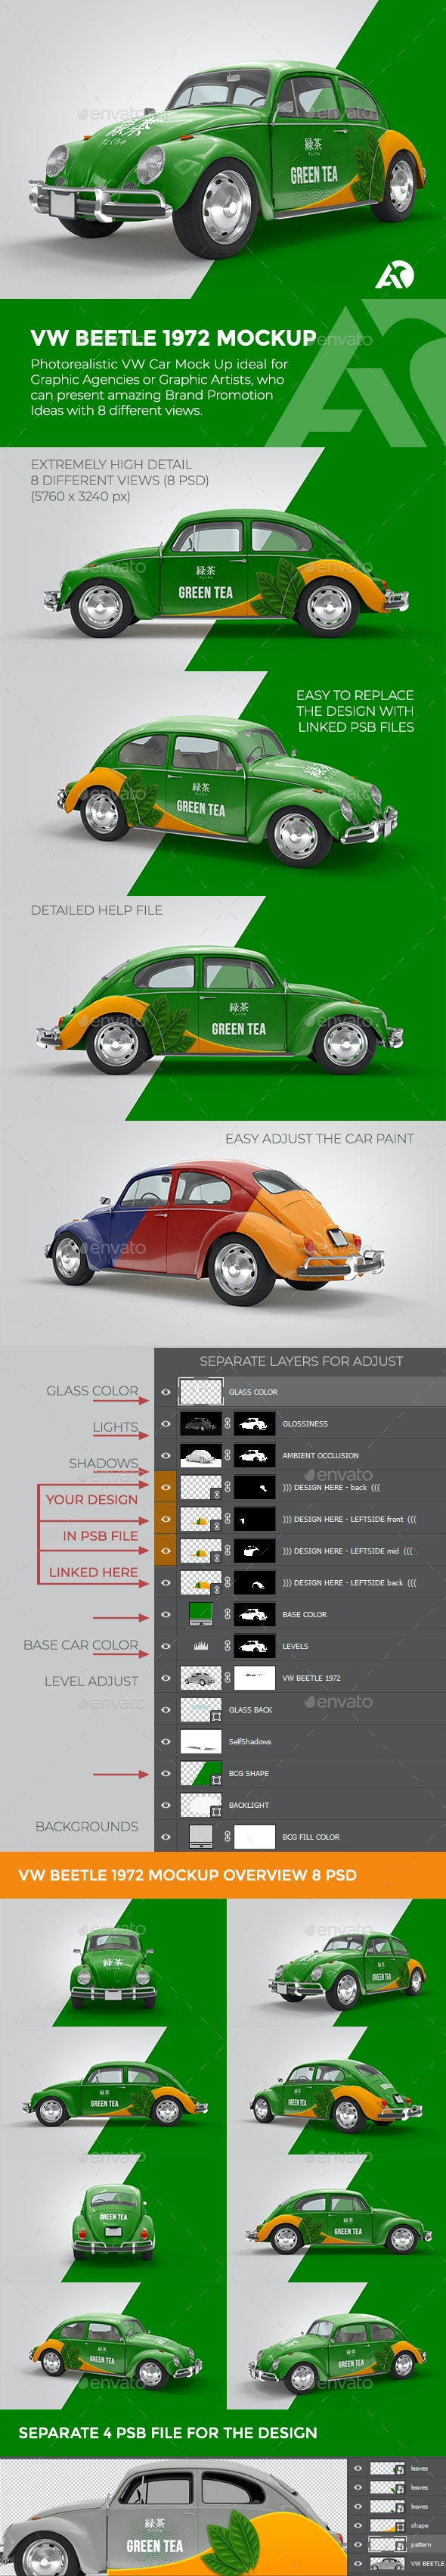 VW BEETLE 1972 Mockup for Brand Promotions - Vehicle Wraps Print